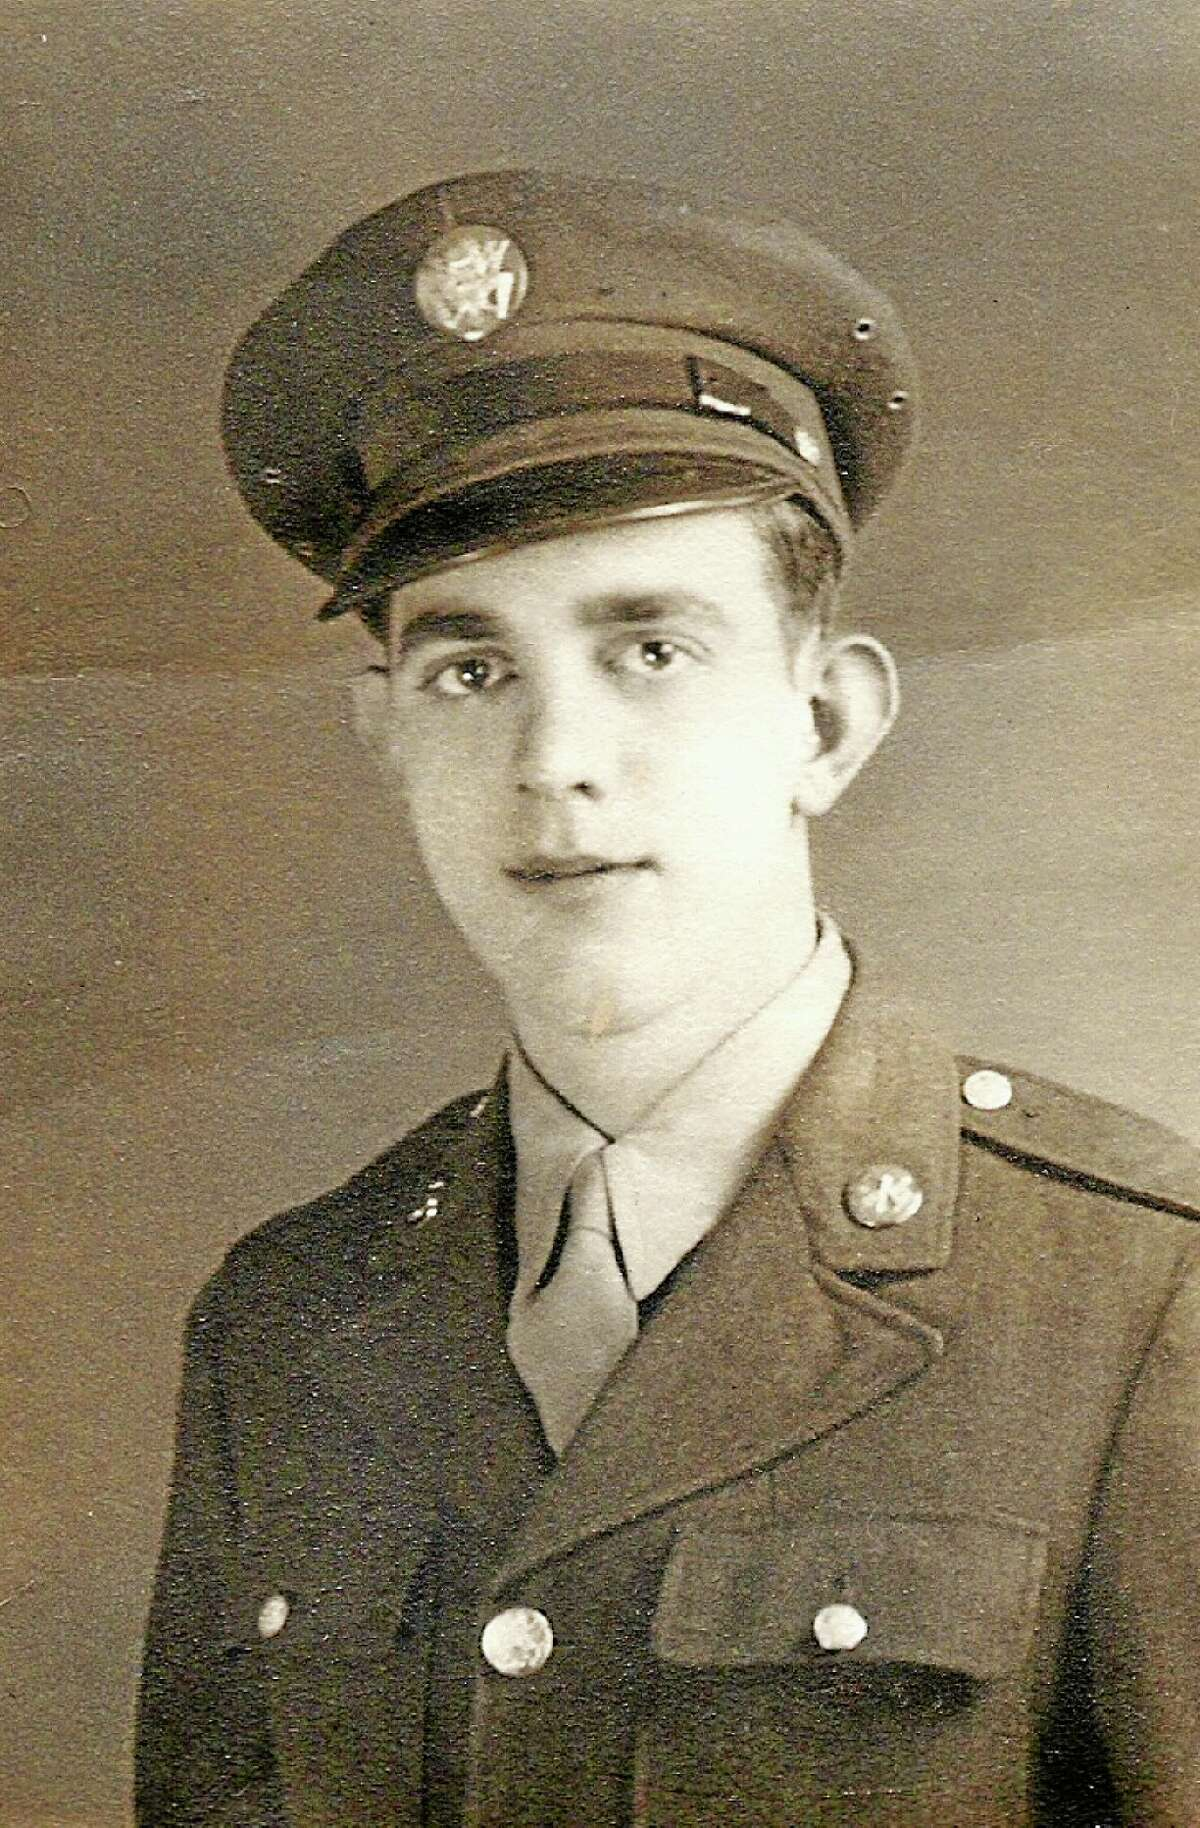 In this 1940s era photo provided by and shown is World War II veteran Richard 'Bert' King. King took part in the D-Day invasion on June 6, 1944. Memories of King's wartime service came in fragments during an interview with The Associate Press. He recalled dodging German subs on the nausea-inducing voyage to Europe, a trip he called 'the worst 10 days of my life.' (AP Photo/Richard King)